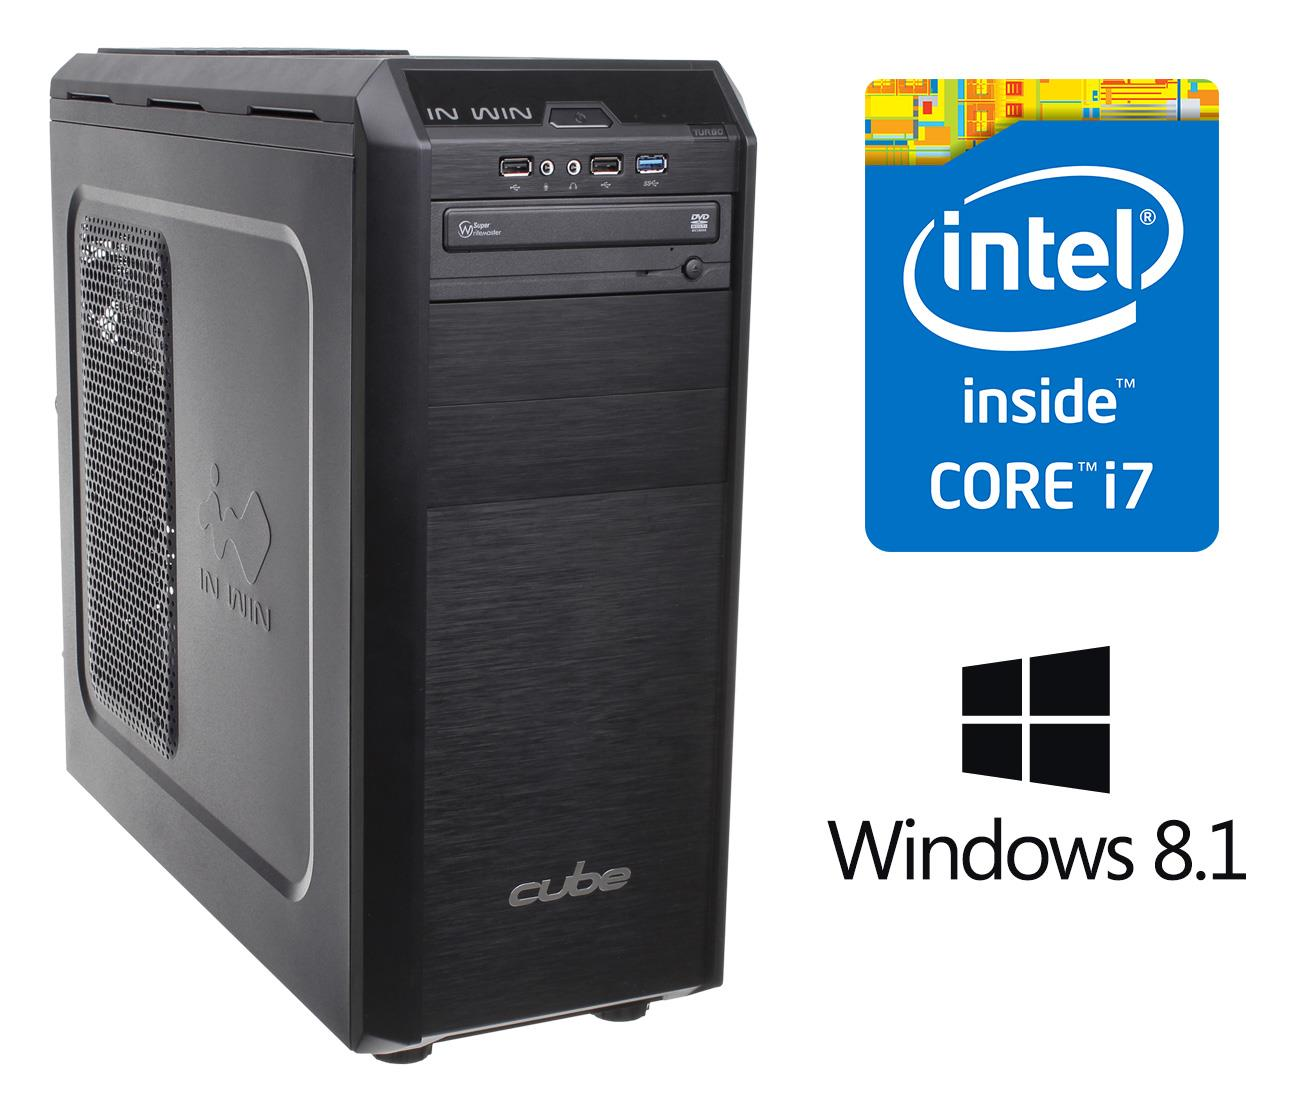 Cube Deluxe Core i7 Desktop System